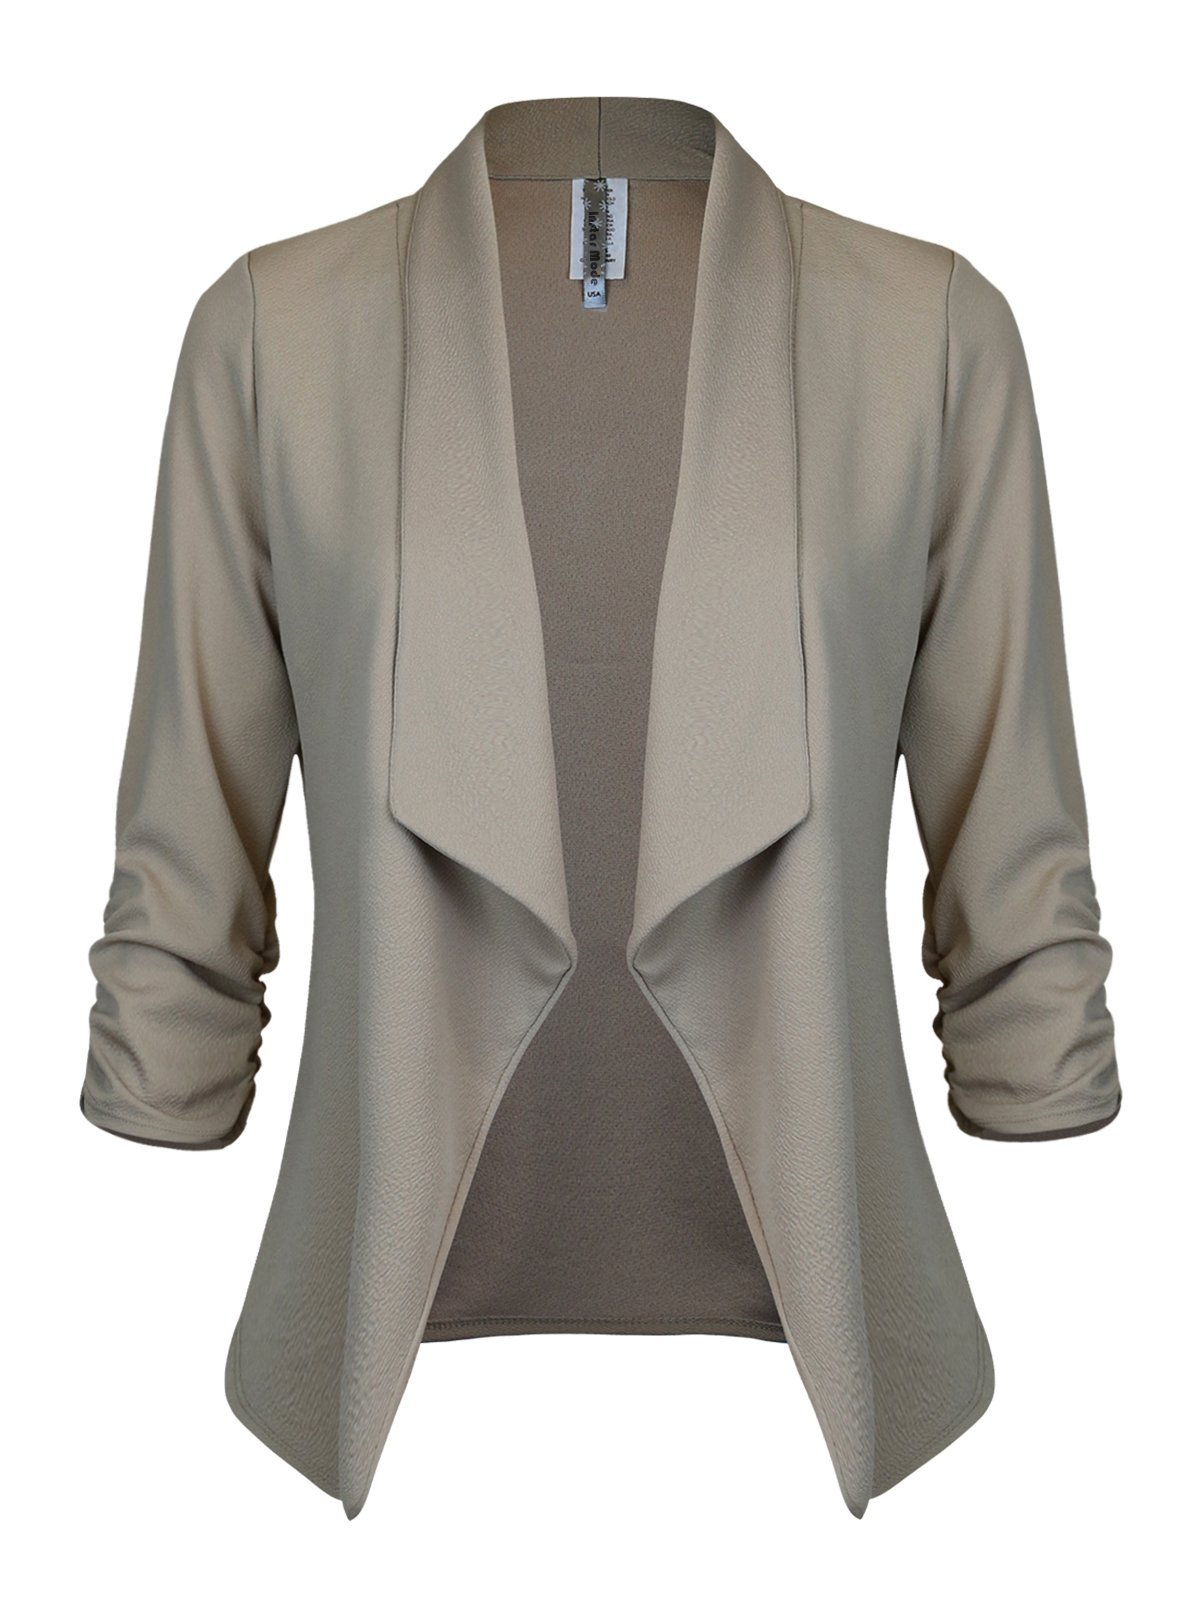 Instar Mode Women's Classic 3/4 Sleeve Open Front Blazer Jacket [S-3X] -Made in USA Khaki L